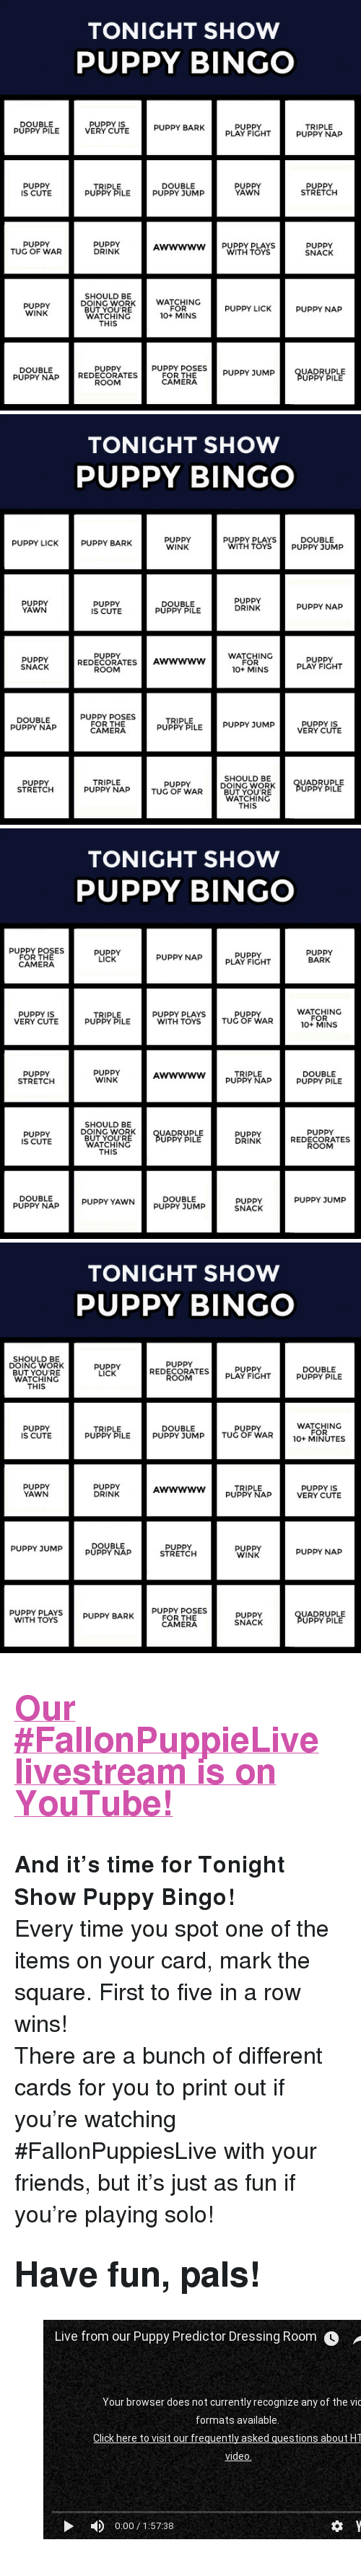 """Cute, Friends, and Target: TONIGHT SHOW  PUPPY BINGO  DOUBLE  PUPPY PILE  PUPPY IS  VERY CUTE  PUPPY BARK  PUPPY  PLAY FIGHT  TRIPLE  PUPPY NAP  PUPPY  IS CUTE  TRIPLE  PUPPY PILE  DOUBLE  PUPPY JUMP  PUPPY  YAWN  PUPPY  STRETCH  PUPPY  TUG OF WAR  PUPPY  DRINK  Awwwww PUPPY PLAYS  WITH TOYS  PUPPY  SNACK  SHOULD BE  DOING WORK  BUT YOU'RE  WATCHING  THIS  WATCHING  FOR  10+ MINS  PUPPY  WINK  PUPPY LICK  PUPPY NAP  PUPPY POSES  FOR THE  CAMERA  PUPPY  DOUBLE  PUPPY NAP REDECORATES  UADRUPLE  UPPY PILE  ROOM   TONIGHT SHOW  PUPPY BINGO  PUPPY  WINK  PUPPY LICK  PUPPY BARK  PUPPY PLAYS  DOUBLE  WITH TOYS PUPPY JUMP  PUPPY  YAWN  PUPPY  IS CUTE  DOUBLE  PUPPY PILE  PUPPY  DRINK  PUPPY NAP  WATCHING  FOR  10+ MINS  PUPPY  PUPPY  SNACK  REDECORATESAWwwww  PUPPY  PLAY FIGHT  ROOM  DOUBLE  PUPPY NAP  PUPPY POSES  FOR THE  CAMERA  TRIPLE  PUPPY PILE PUPPY JUMP  PUPPY IS  VERY CUTE  SHOULD BE  DOING WORK  BUT YOU'RE  WATCHING  THIS  PUPPY  STRETCH  TRIPLE  PUPPY NAP  UADRUPLE  UPPY PILE  TUG OF WAR   TONIGHT SHOW  PUPPY BINGO  PUPPY POSES  FOR THE  CAMERA  PUPPY  LICK  PUPPY  PLAY FIGHT  PUPPY  BARK  PUPPY NAP  PUPPY IS  VERY CUTE  WATCHING  FOR  10+ MINS  PUPPY PLAYS  PUPPY  TRIPLE  PUPPY PILE  WITH TOYS TUG OF WAR  PUPPY  STRETCH  PUPPY  WINK  TRIPLE  PUPPY NAP  DOUBLE  PUPPY PILE  AWwwww  SHOULD BE  DOING WORK  BUT YOU'RE  WATCHING  THIS  PUPPY  REDECORATES  ROOM  PUPPY  IS CUTE  UADRUPLE  UPPY PILE  PUPPY  DRINK  DOUBLE  PUPPY SUMP  DOUBLE  PUPPN^P PUPPY YAWN  PUPPY JUMP  PUPPY  SNACK   TONIGHT SHOW  PUPPY BINGO  SHOULD BE  DOING WORK  BUT YOU'RE  WATCHING  THIS  PUPPY  REDECORATES  ROOM  PUPPY  LICK  PUPPY  PLAY FIGHT  DOUBLE  PUPPY PILE  PUPPY  IS CUTE  TRIPLE  PUPPY PILE  DOUBLE  PUPPY JUMP  PUPPY  TUG OF WAR  WATCHING  FOR  PUPPY  YAWN  PUPPY  DRINK  TRIPLE  PUPPY NAP  PUPPY IS  VERY CUTE  DOUBLE  PUPPY NAP  PUPPY JUMP  PUPPY  WINK  STRETCH  PUPPY NAP  WITH TOYSPUPPY BARKORTO ES  FOR THE  CAMERA  PUPPY  SNACK  UADRUPLE  UPPY PILE <h2><b><a href=""""https://youtu.be/p2I"""